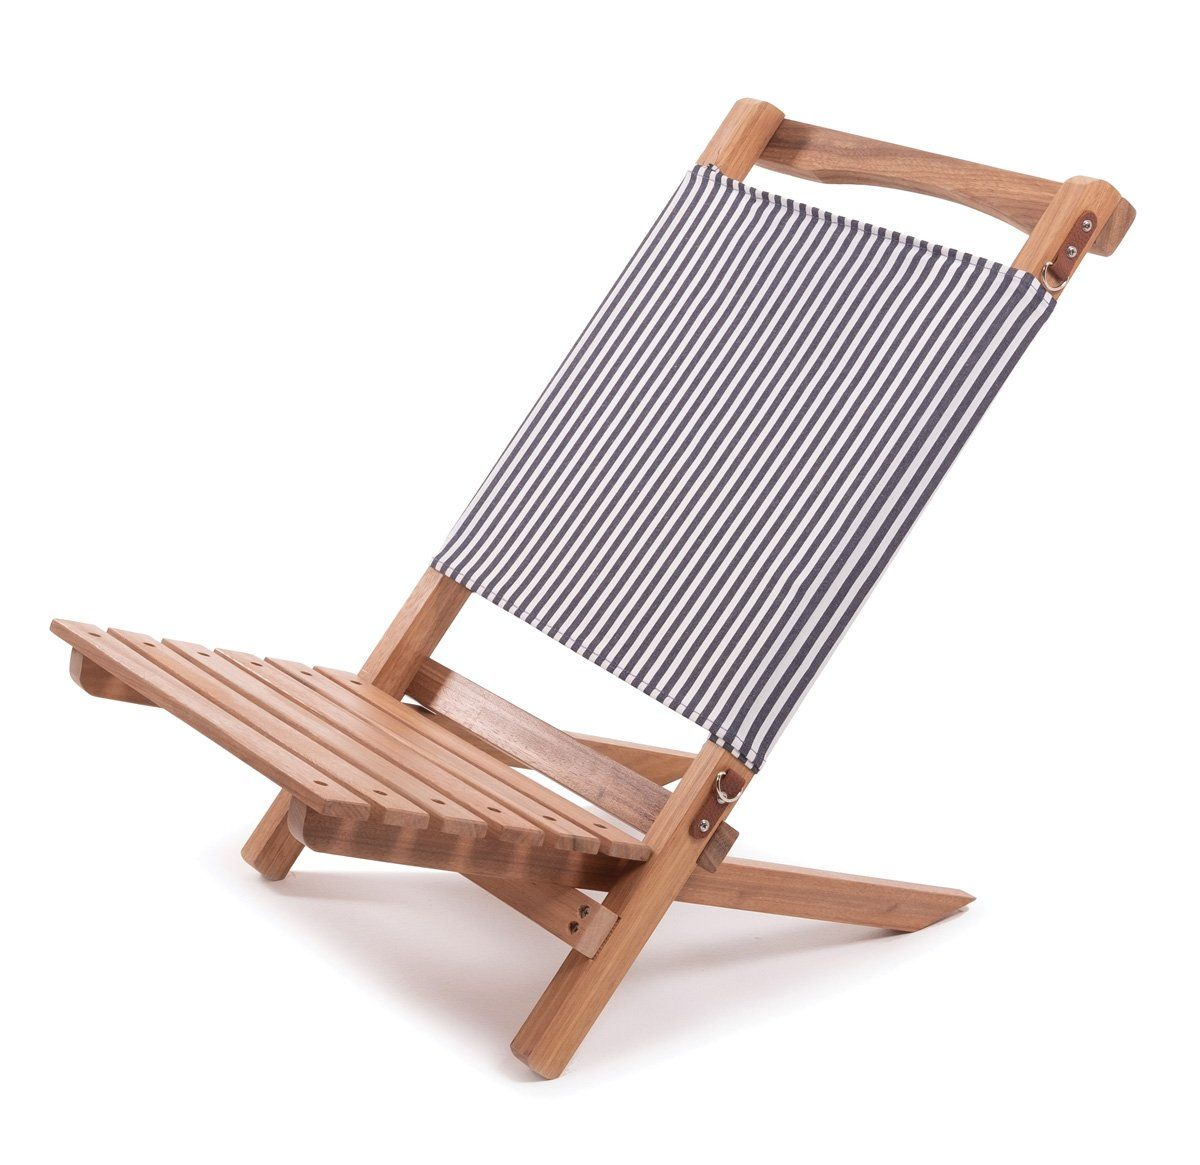 The 2 Piece Chair Lauren S Navy Stripe In 2021 Beach Chairs Navy Stripes Outdoor Chairs